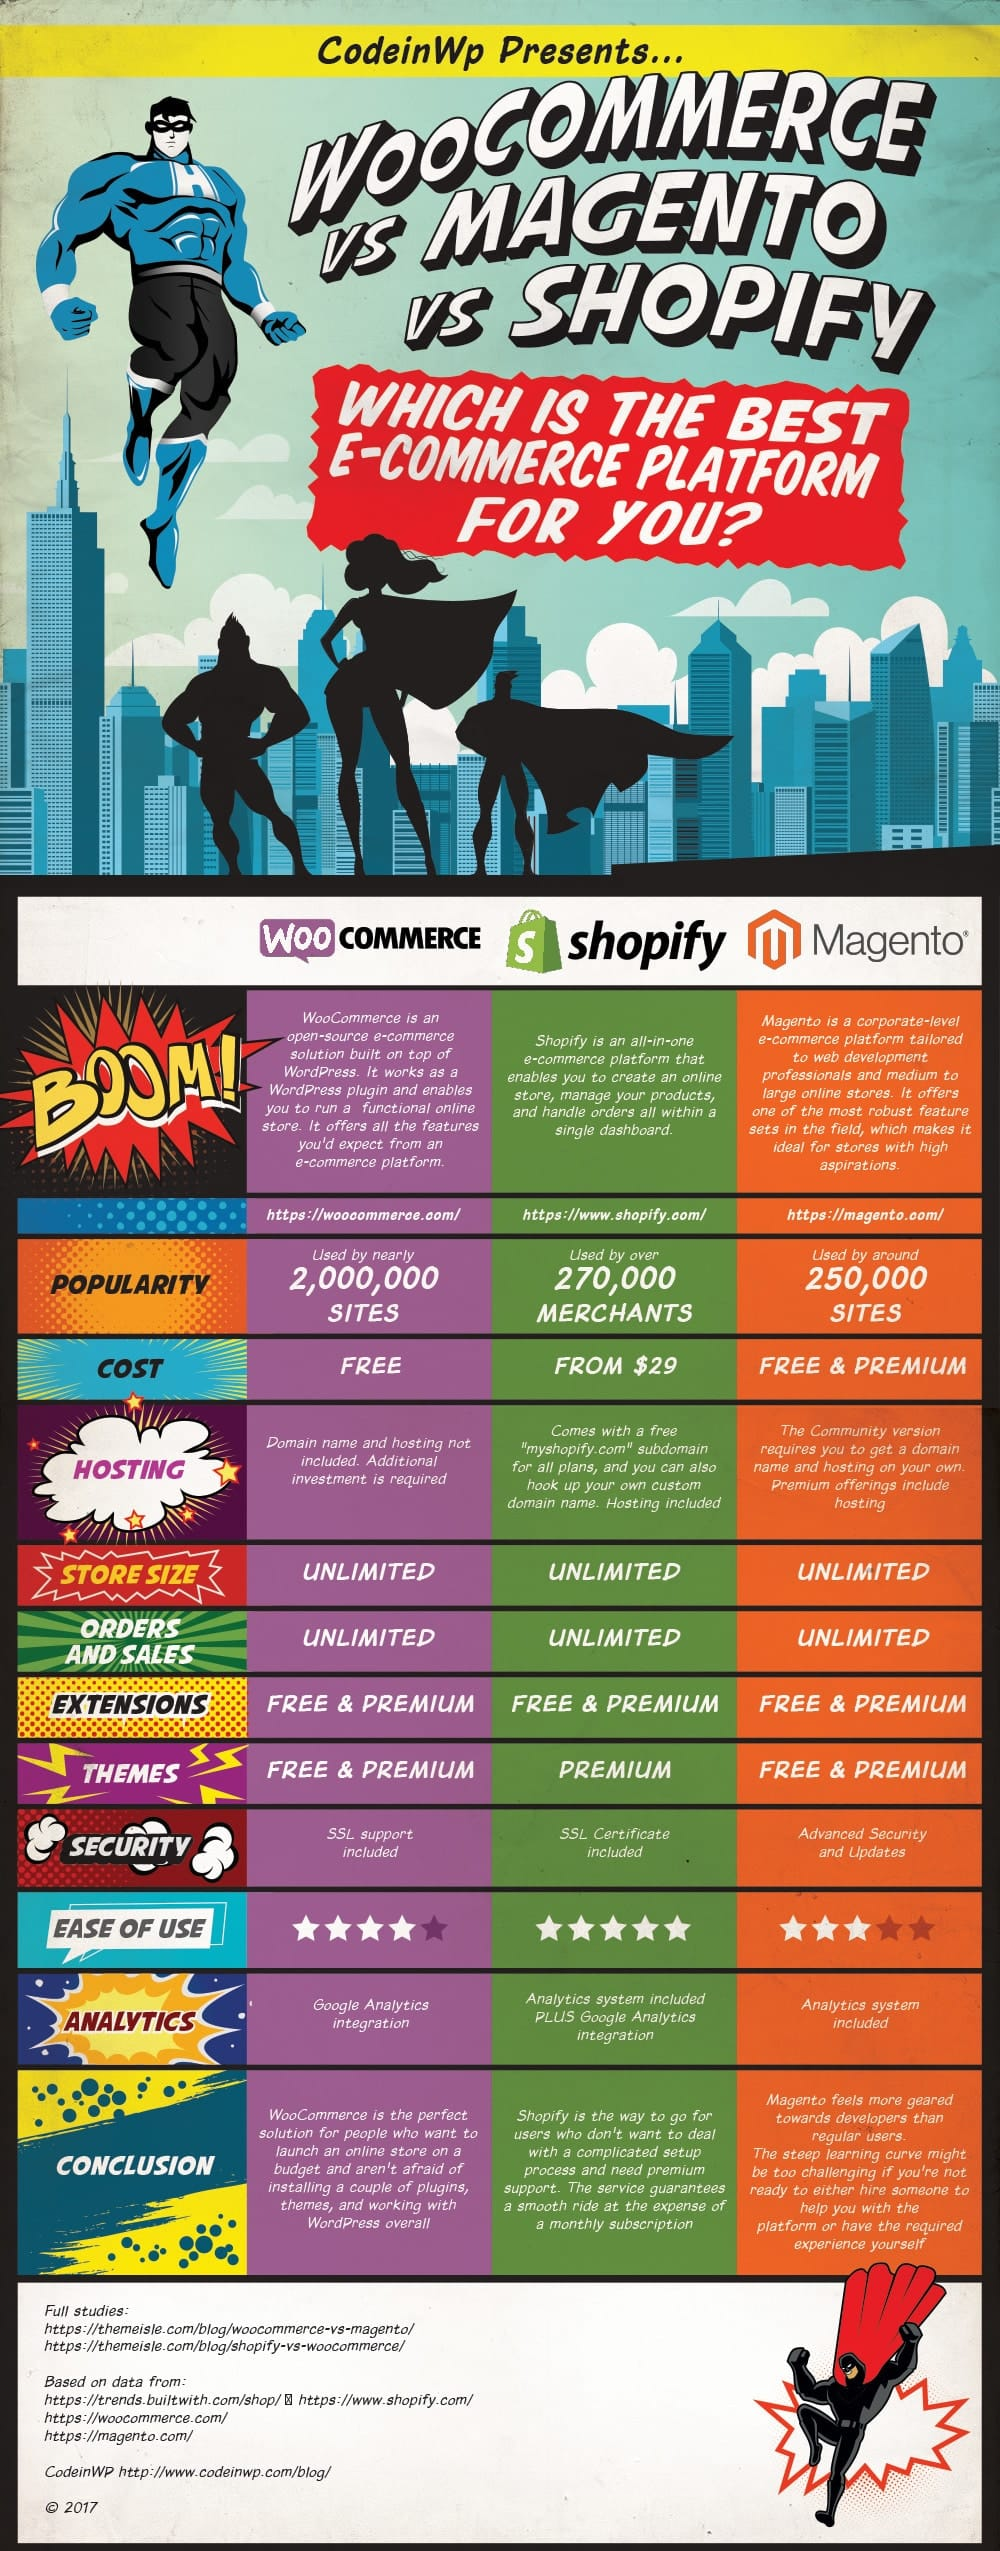 WooCommerce vs Magento vs Shopify Infographic